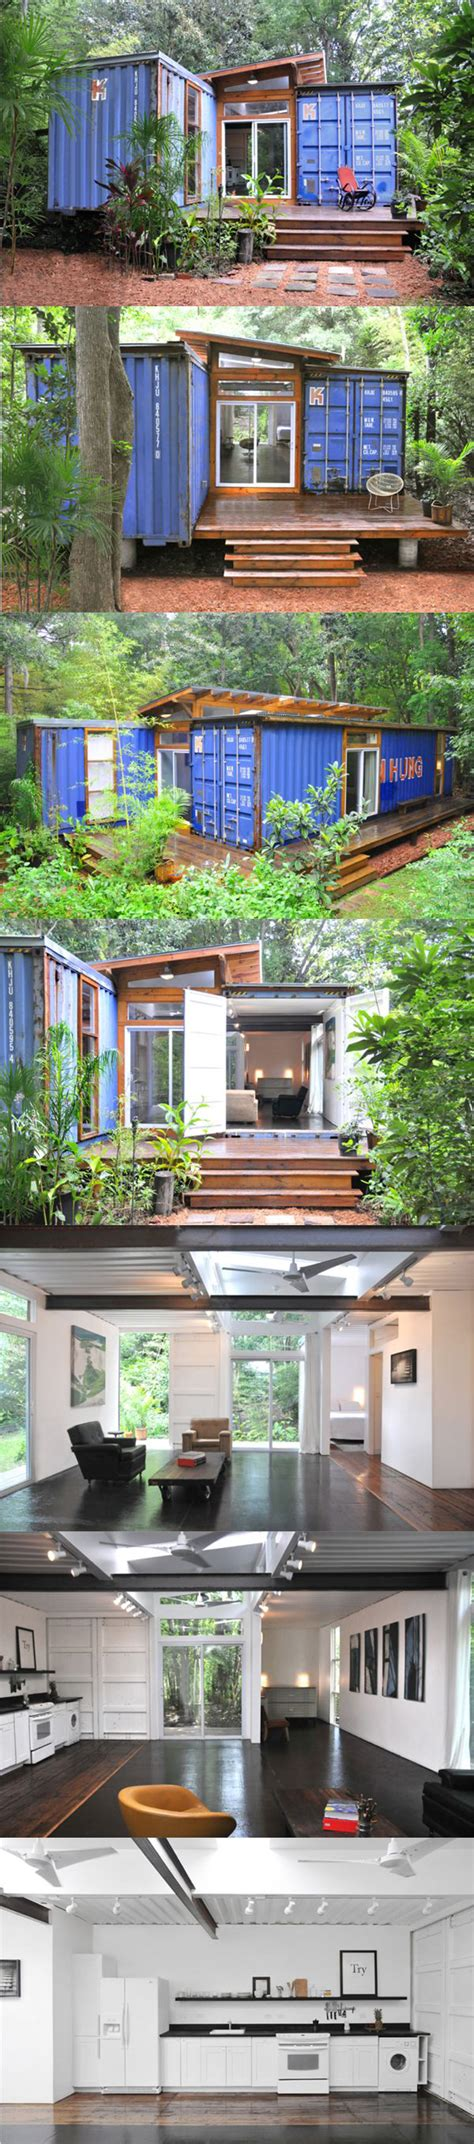 inside and outside of a beautiful shipping container home